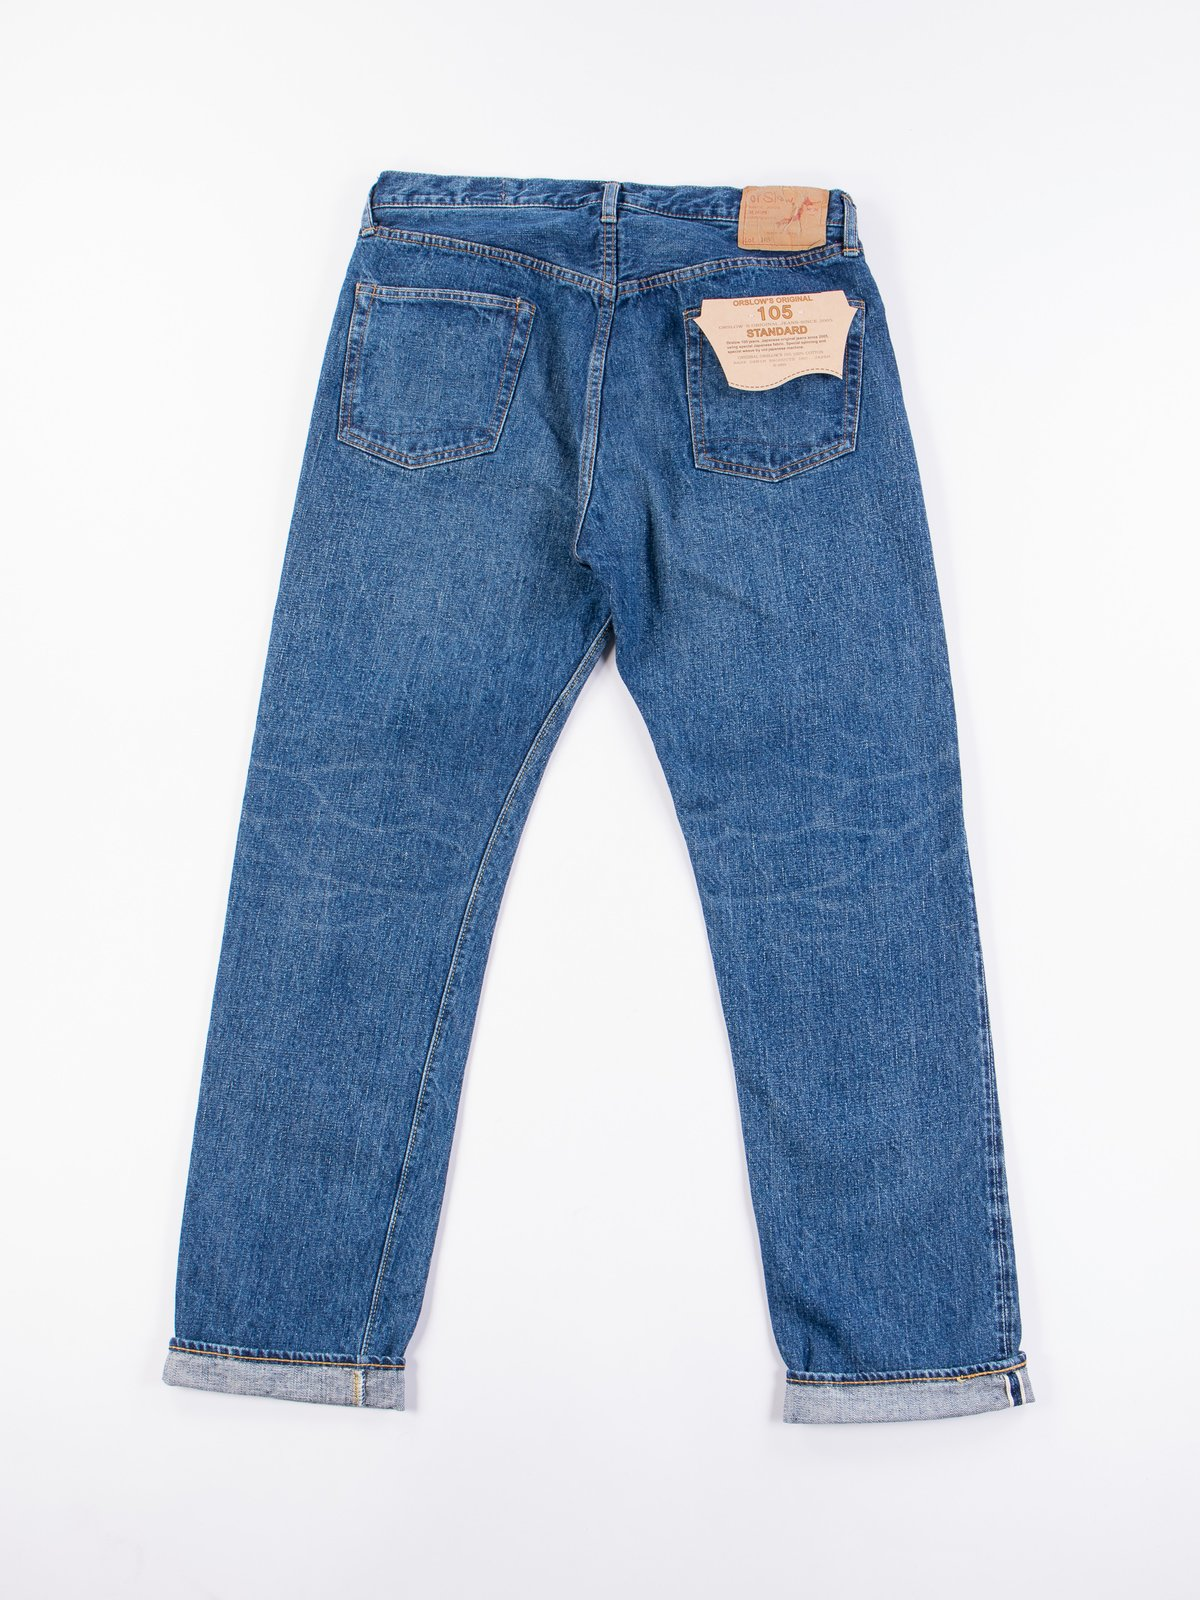 2 Year Wash 105 Standard 5 Pocket Jean - Image 8